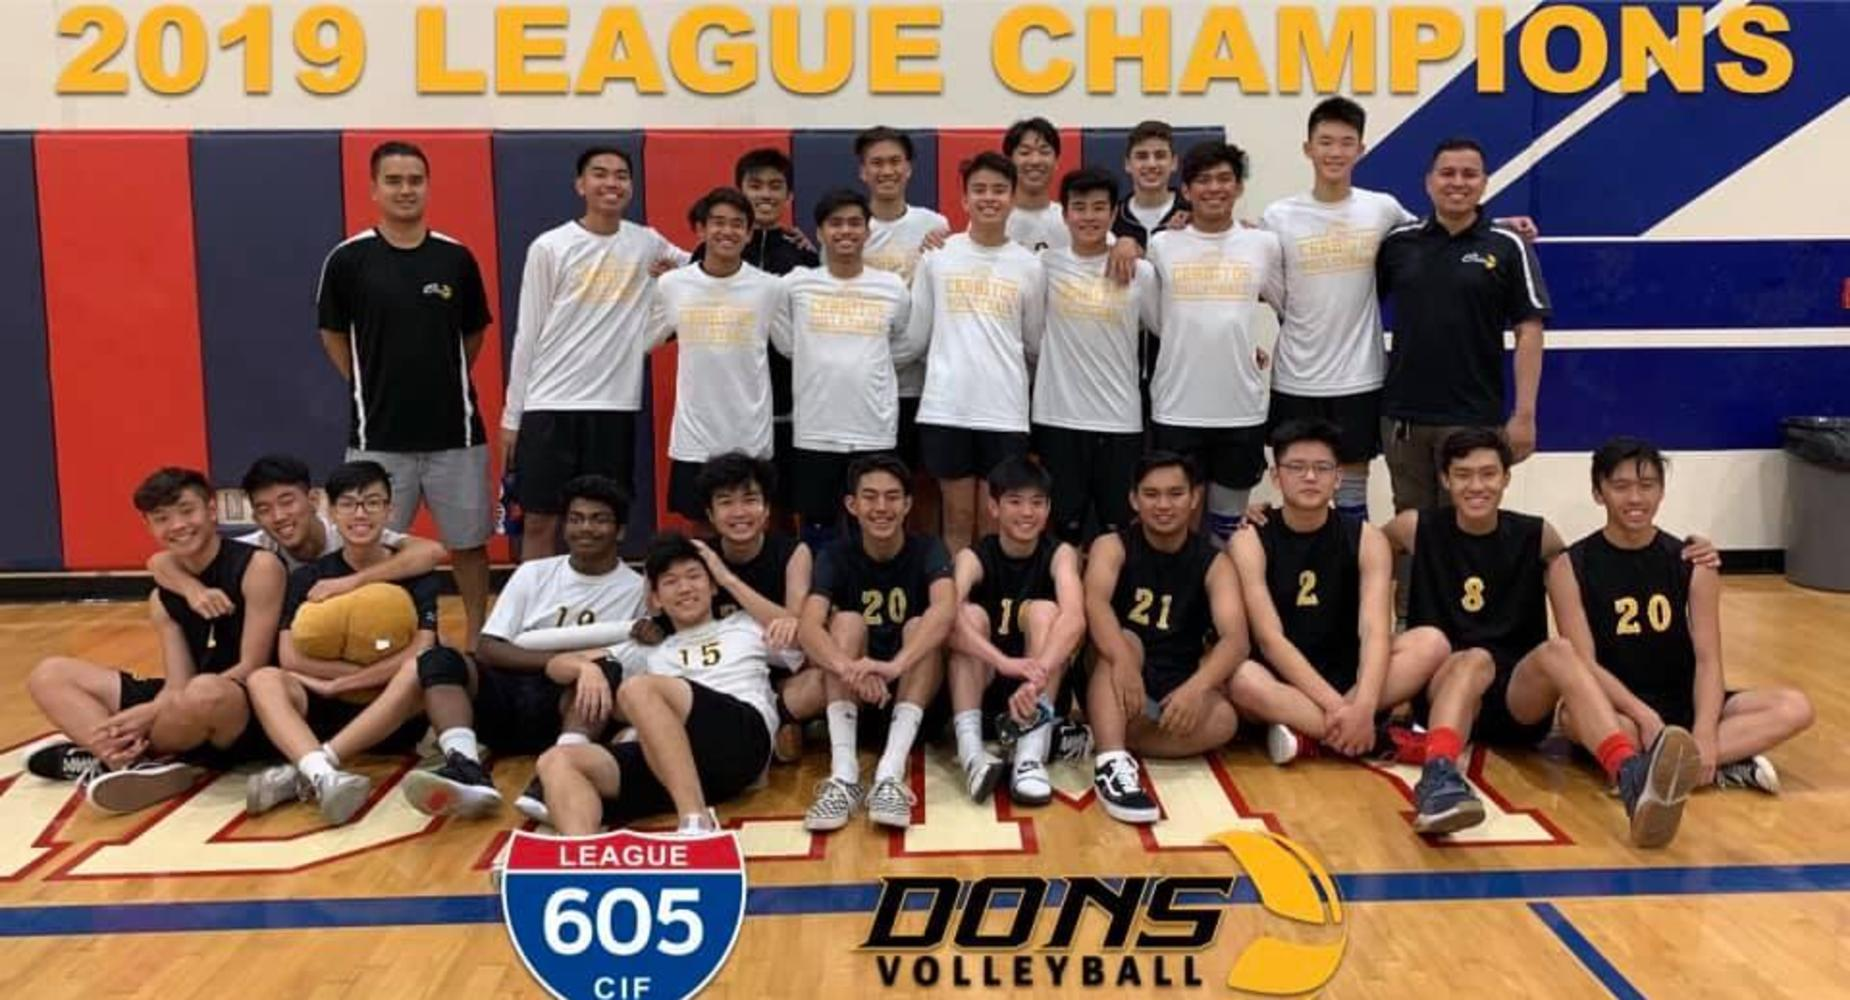 Boys Volleyball 2019 League Champions